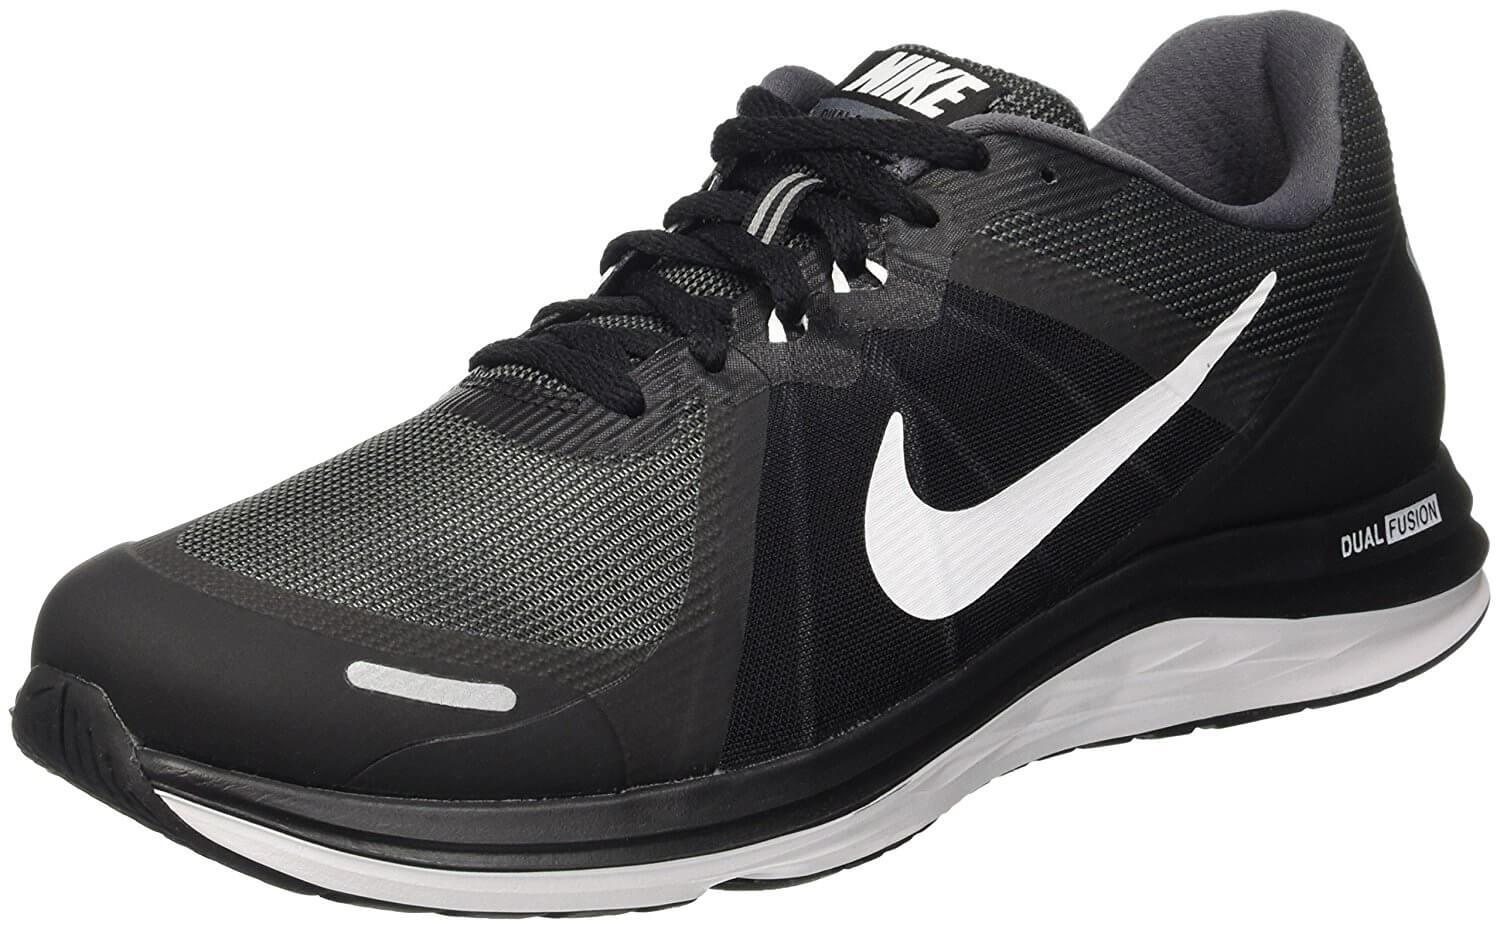 Mens Athletic Shoes Get New 4672996 Nike Dual Fusion X Black White 7 0 D